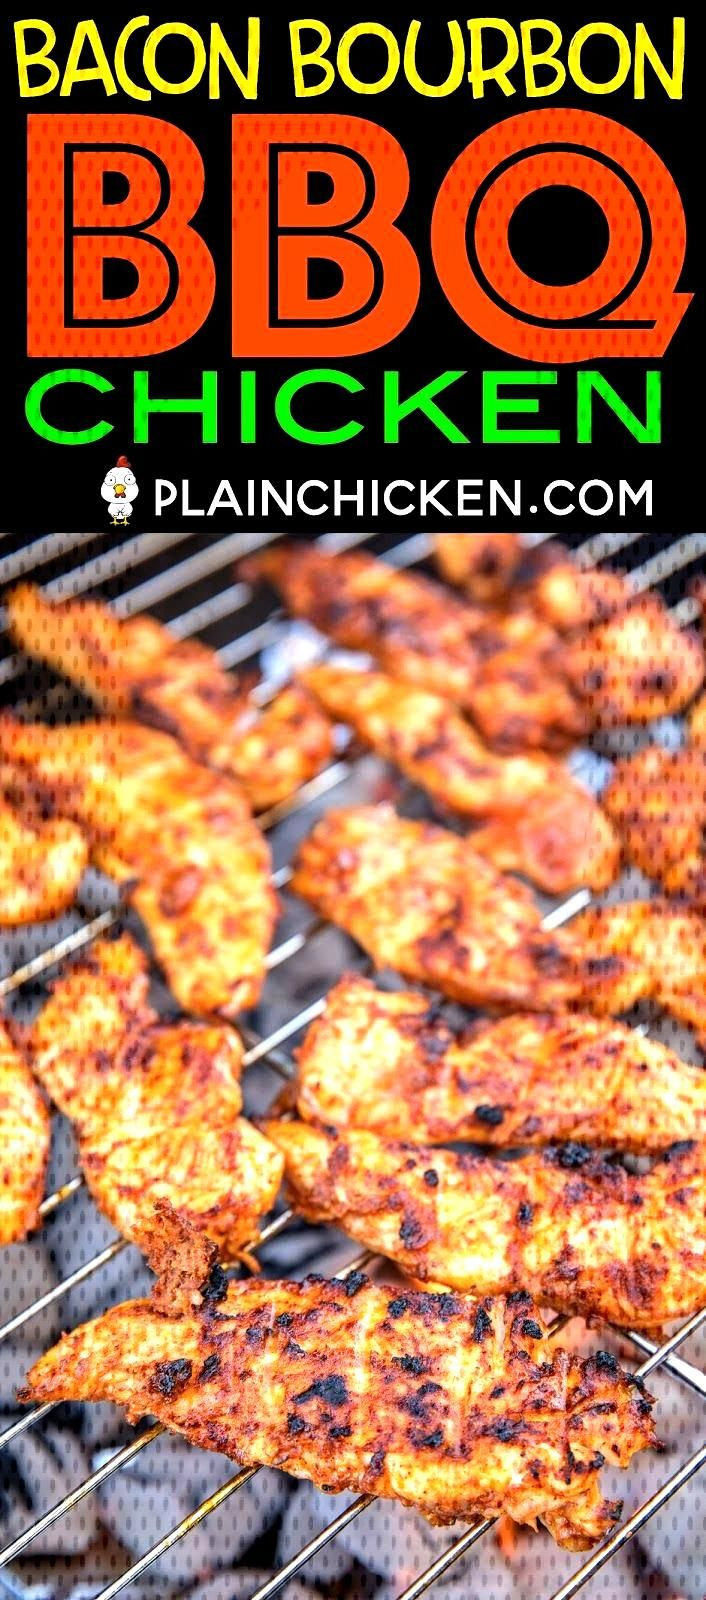 Bacon Bourbon BBQ Chicken - THE BEST chicken EVER! Chicken coated in a BBQ Bacon paste and brushed